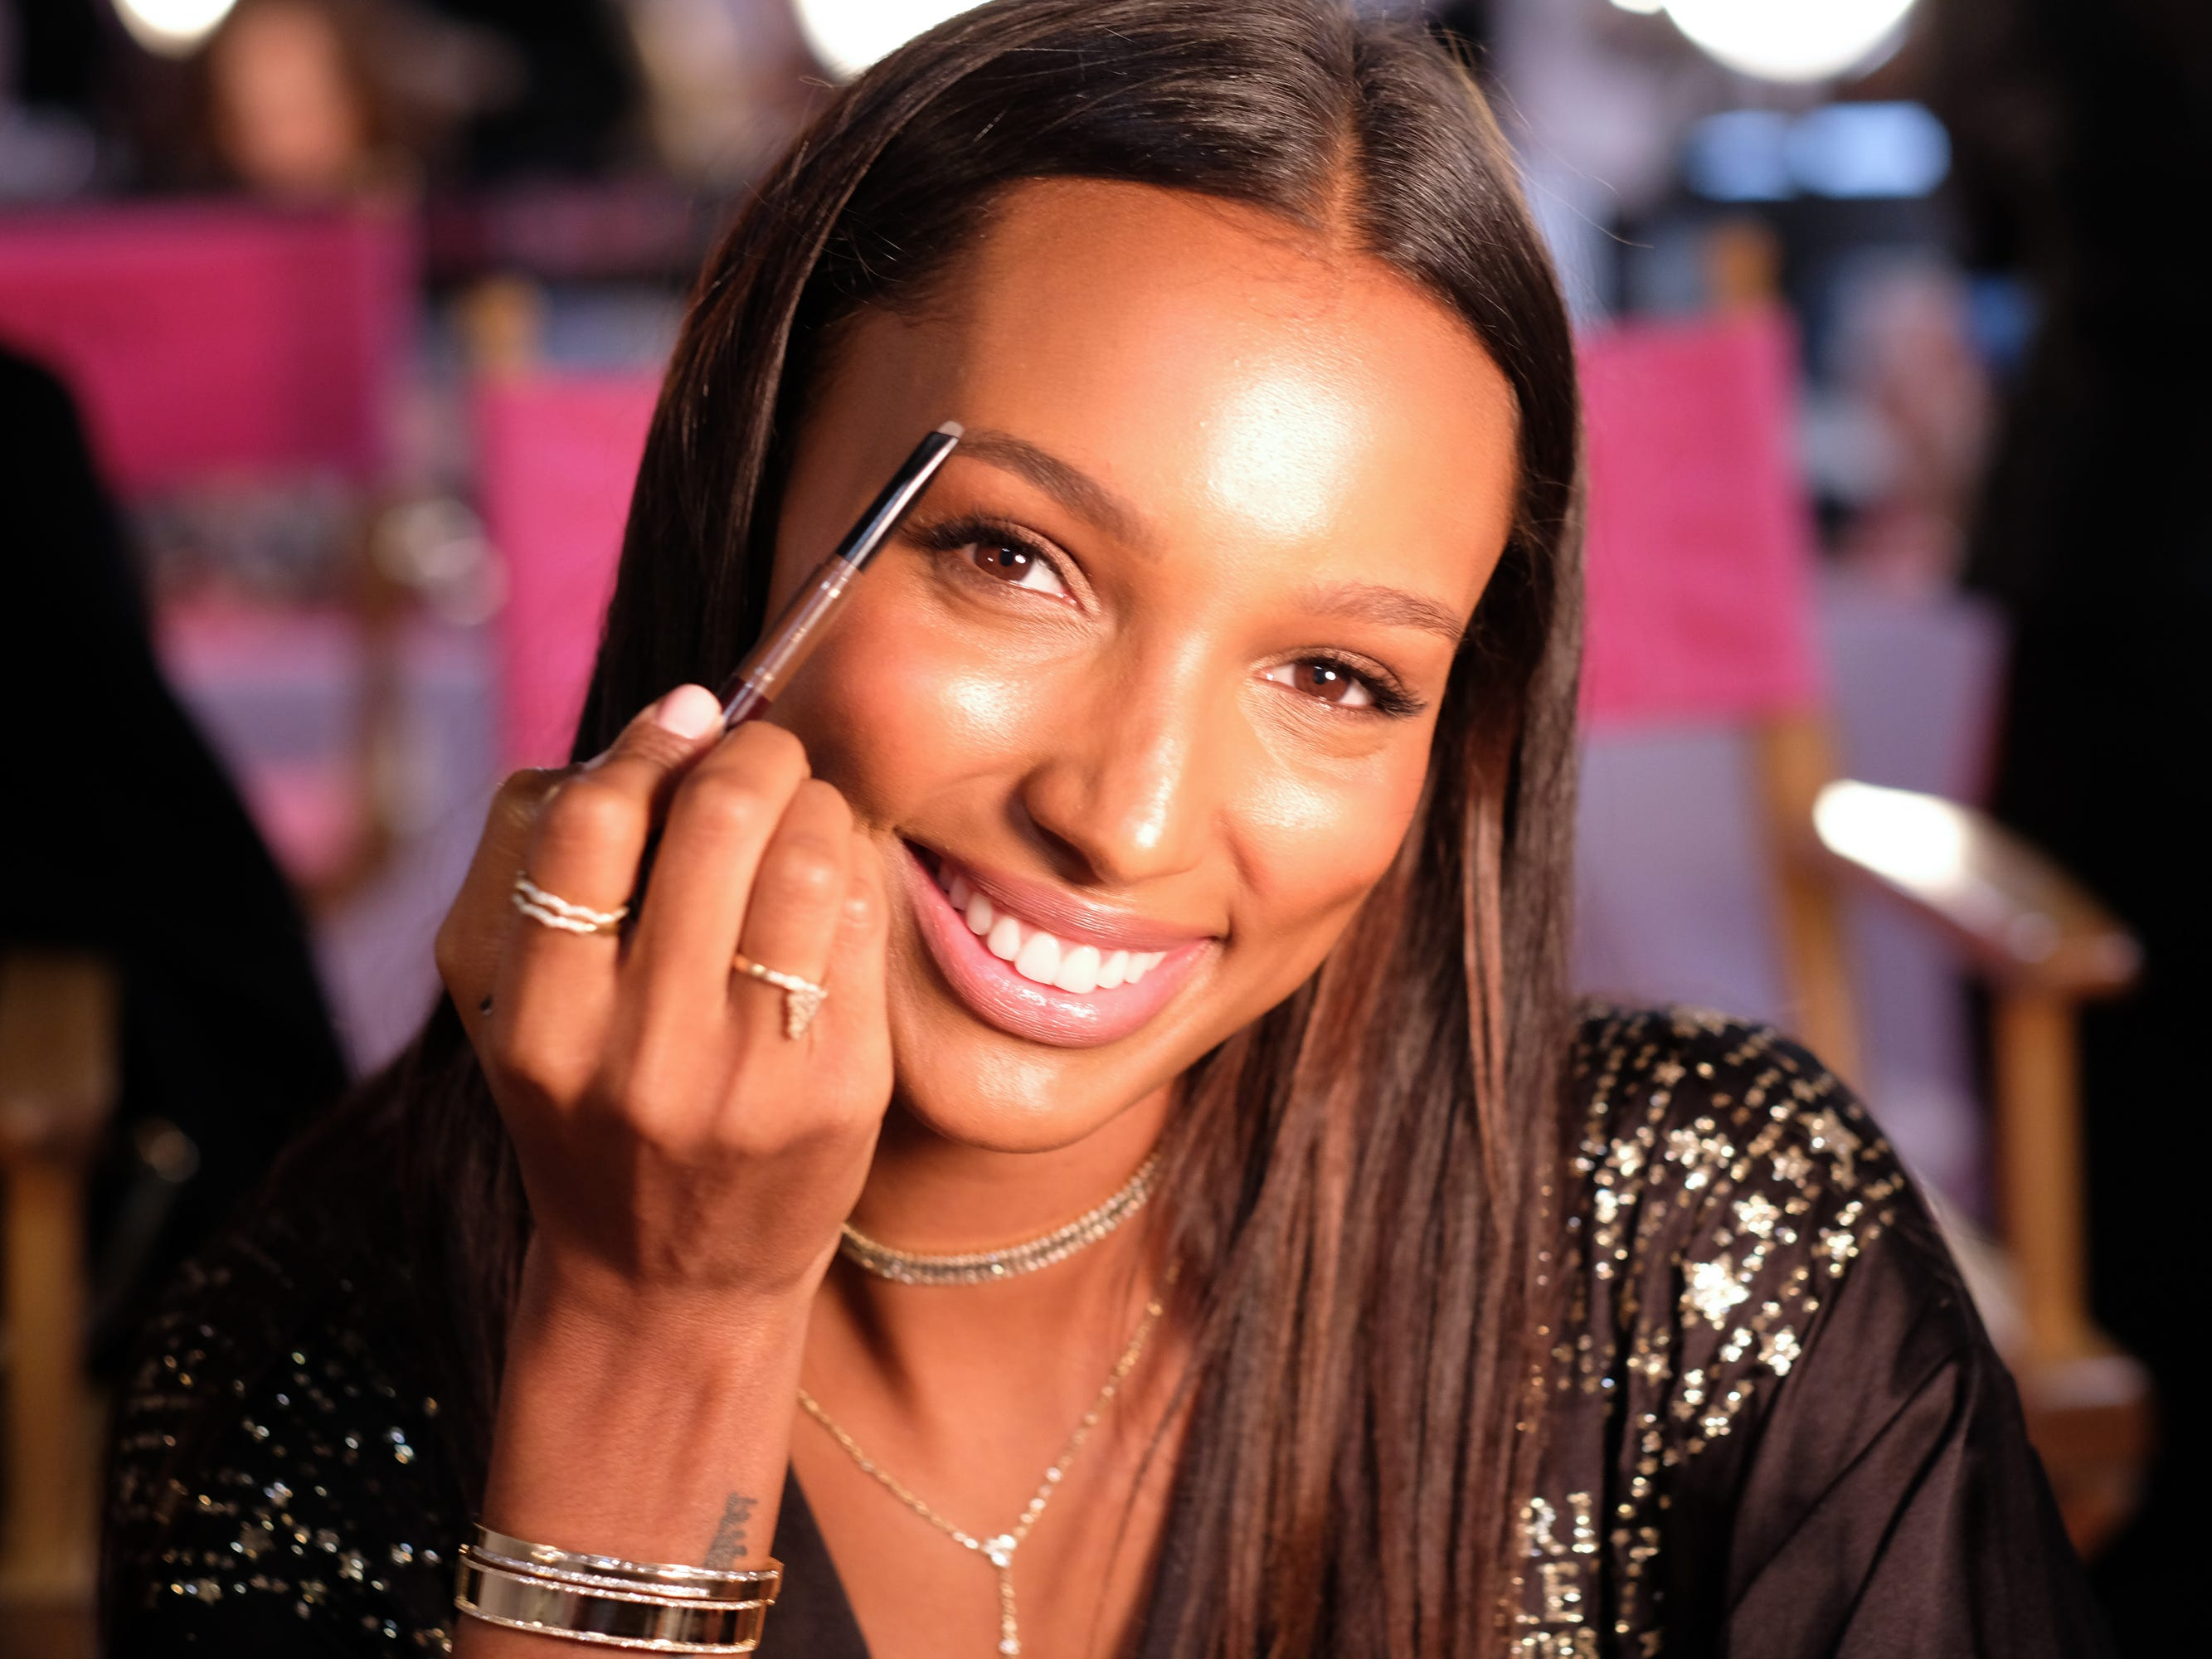 Yep, it's that time of year!  The beginning of the 2018 Victoria's Secret Fashion Show starts backstage with hair and makeup. Veteran Angel Jasmine Tookes prepares backstage  at Pier 94 on Nov. 8, 2018 in New York.